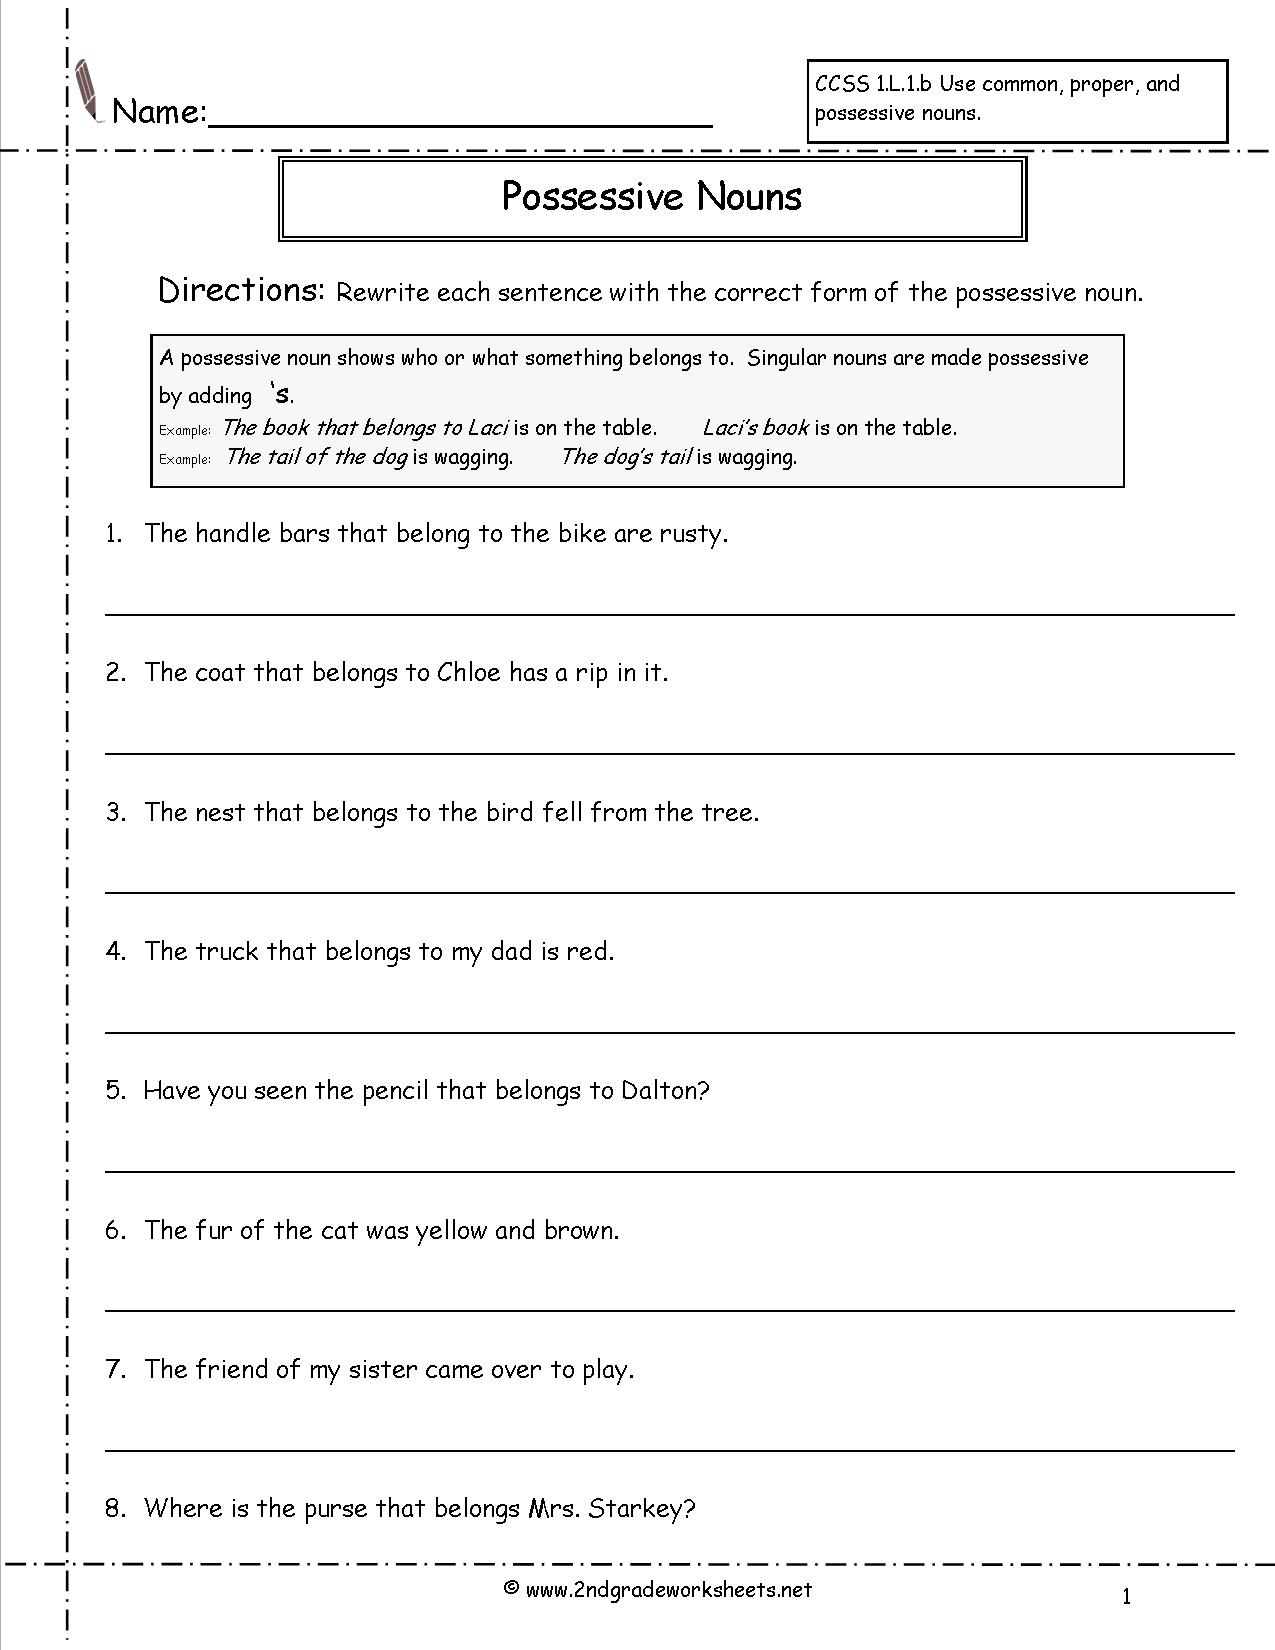 18 Best Images Of Possessive Nouns Printable Worksheets